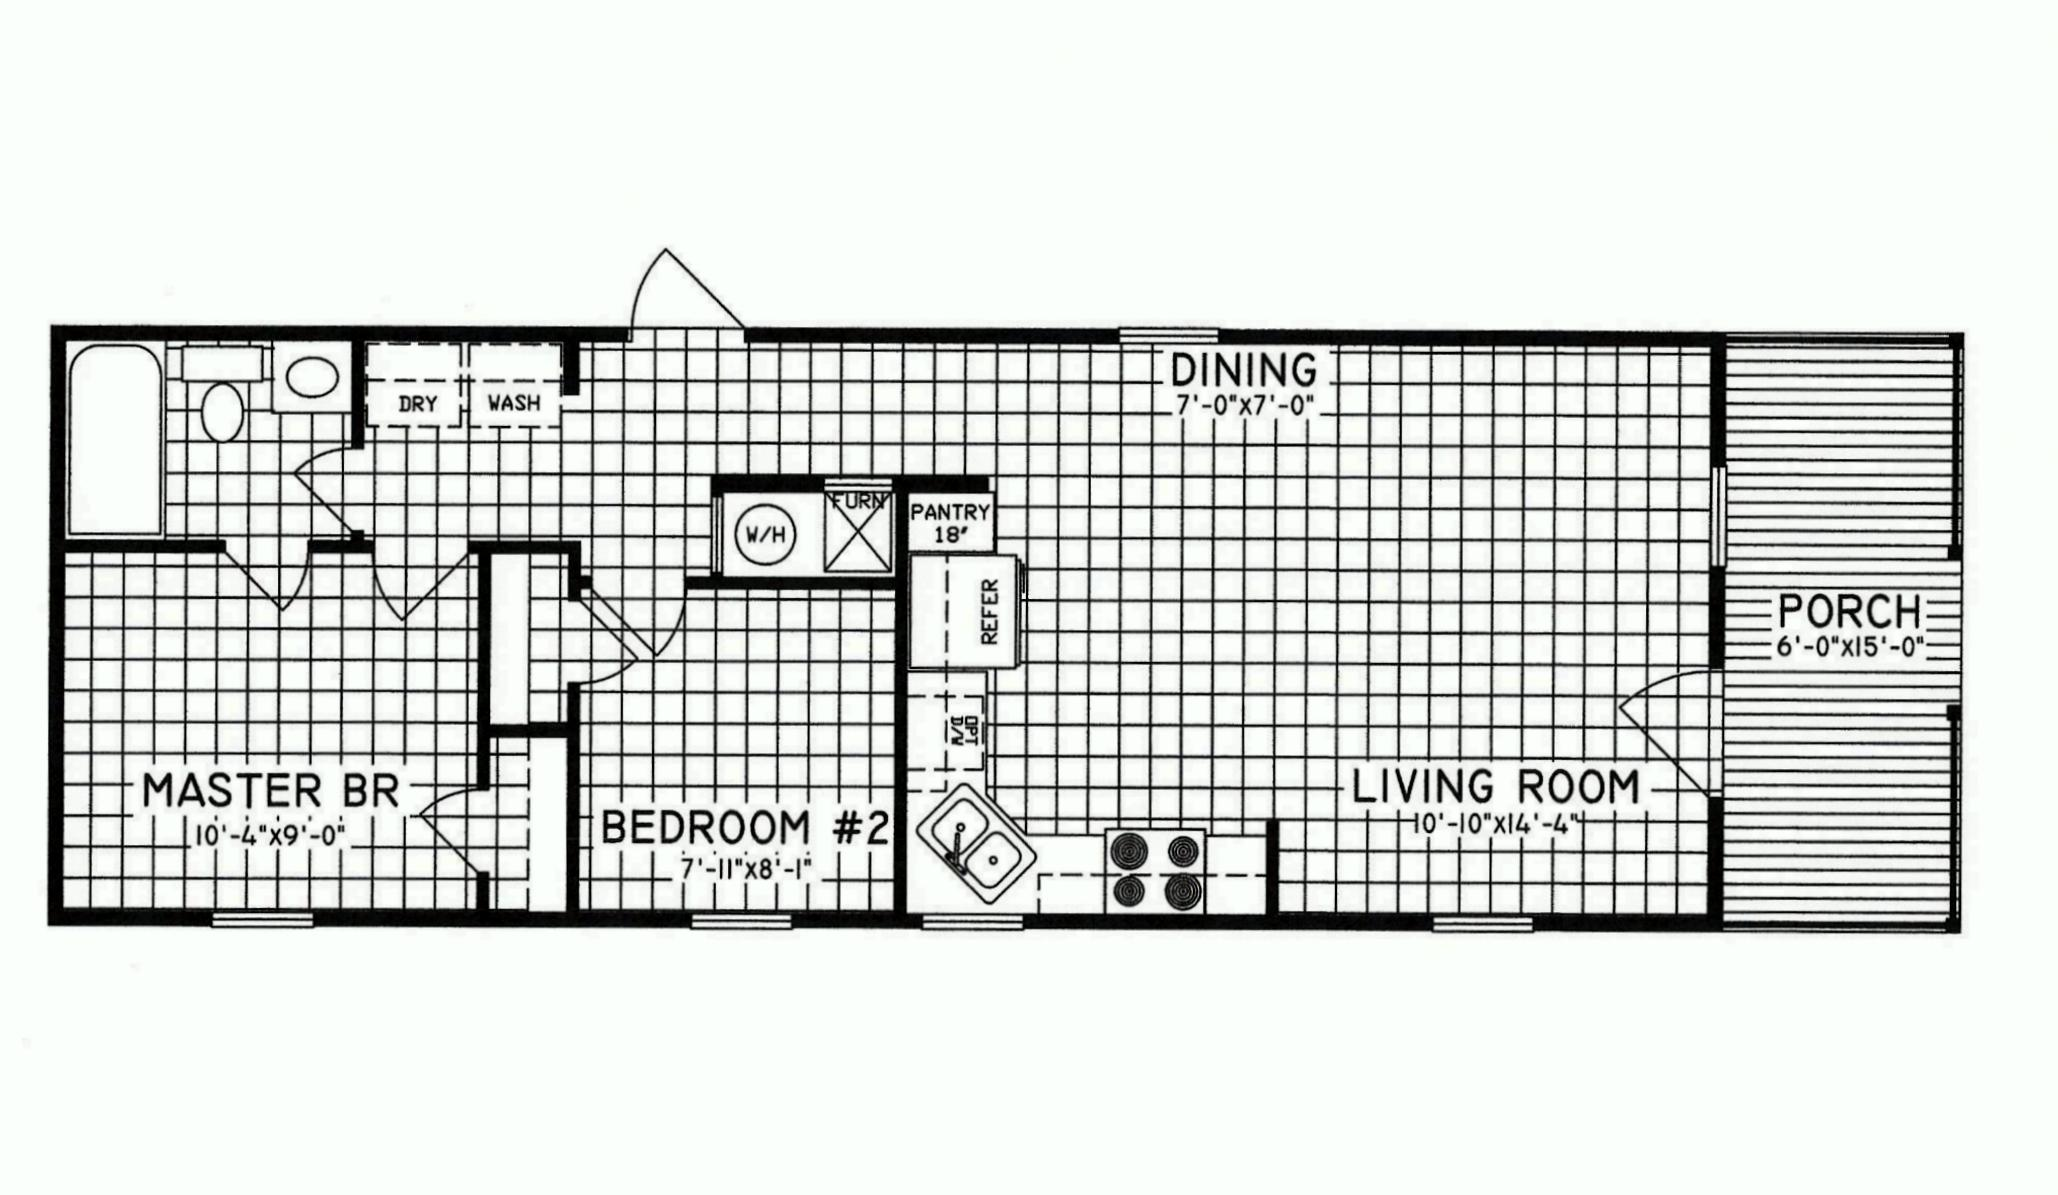 2 Bedroom Mobile Home Floor Plans 2 bedroom floor plan: c-7101 - hawks homes | manufactured